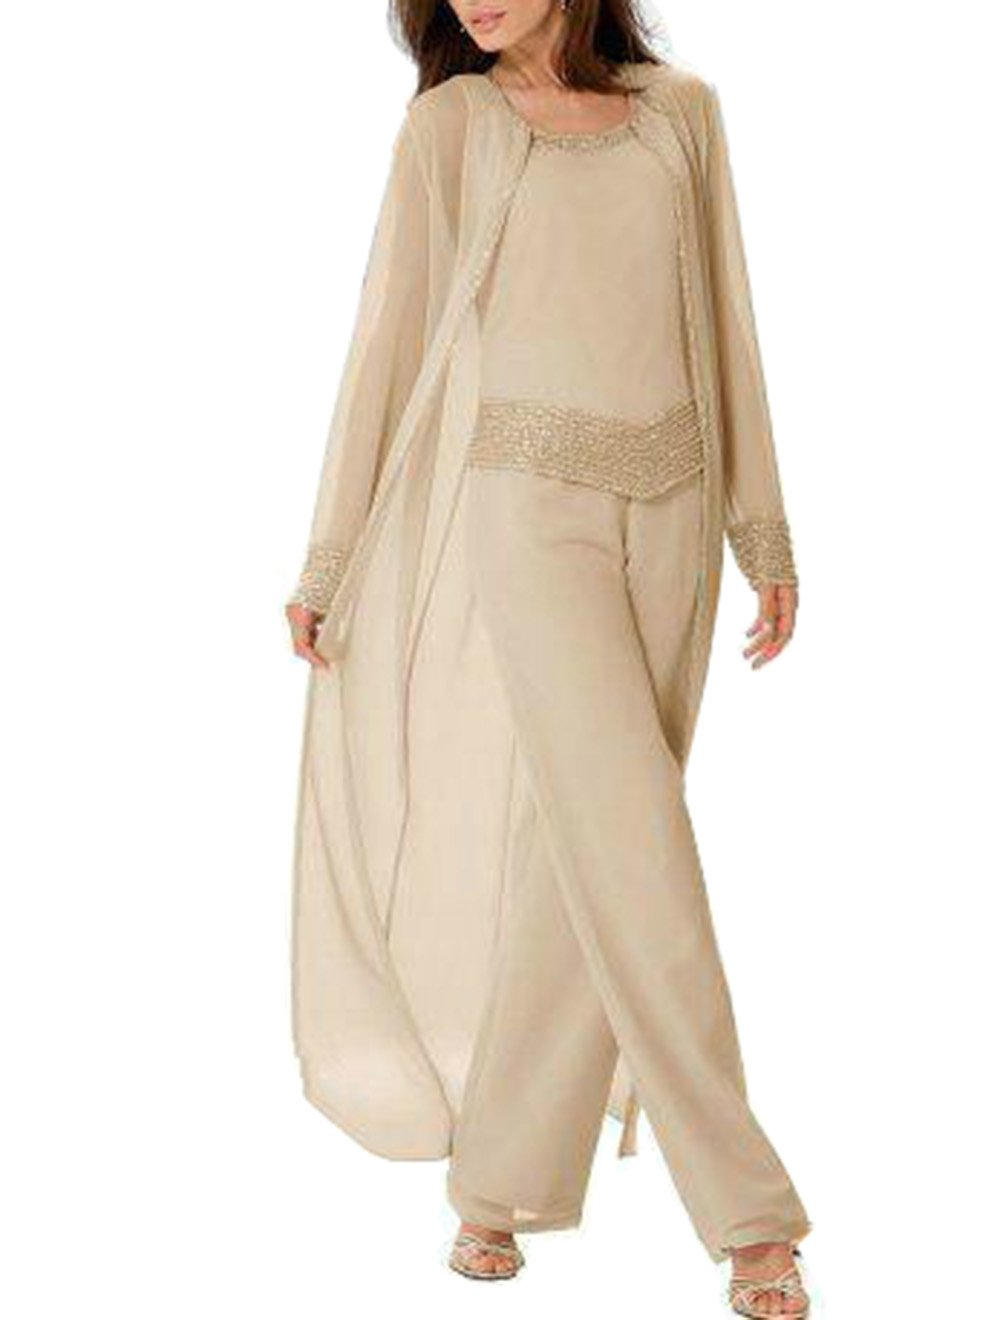 Women 3 Pieces Elegant Beading Chiffon Mother Of The Bride Dress Pants Suit With Long Jacket Outfit Long Sleeves For Wedding